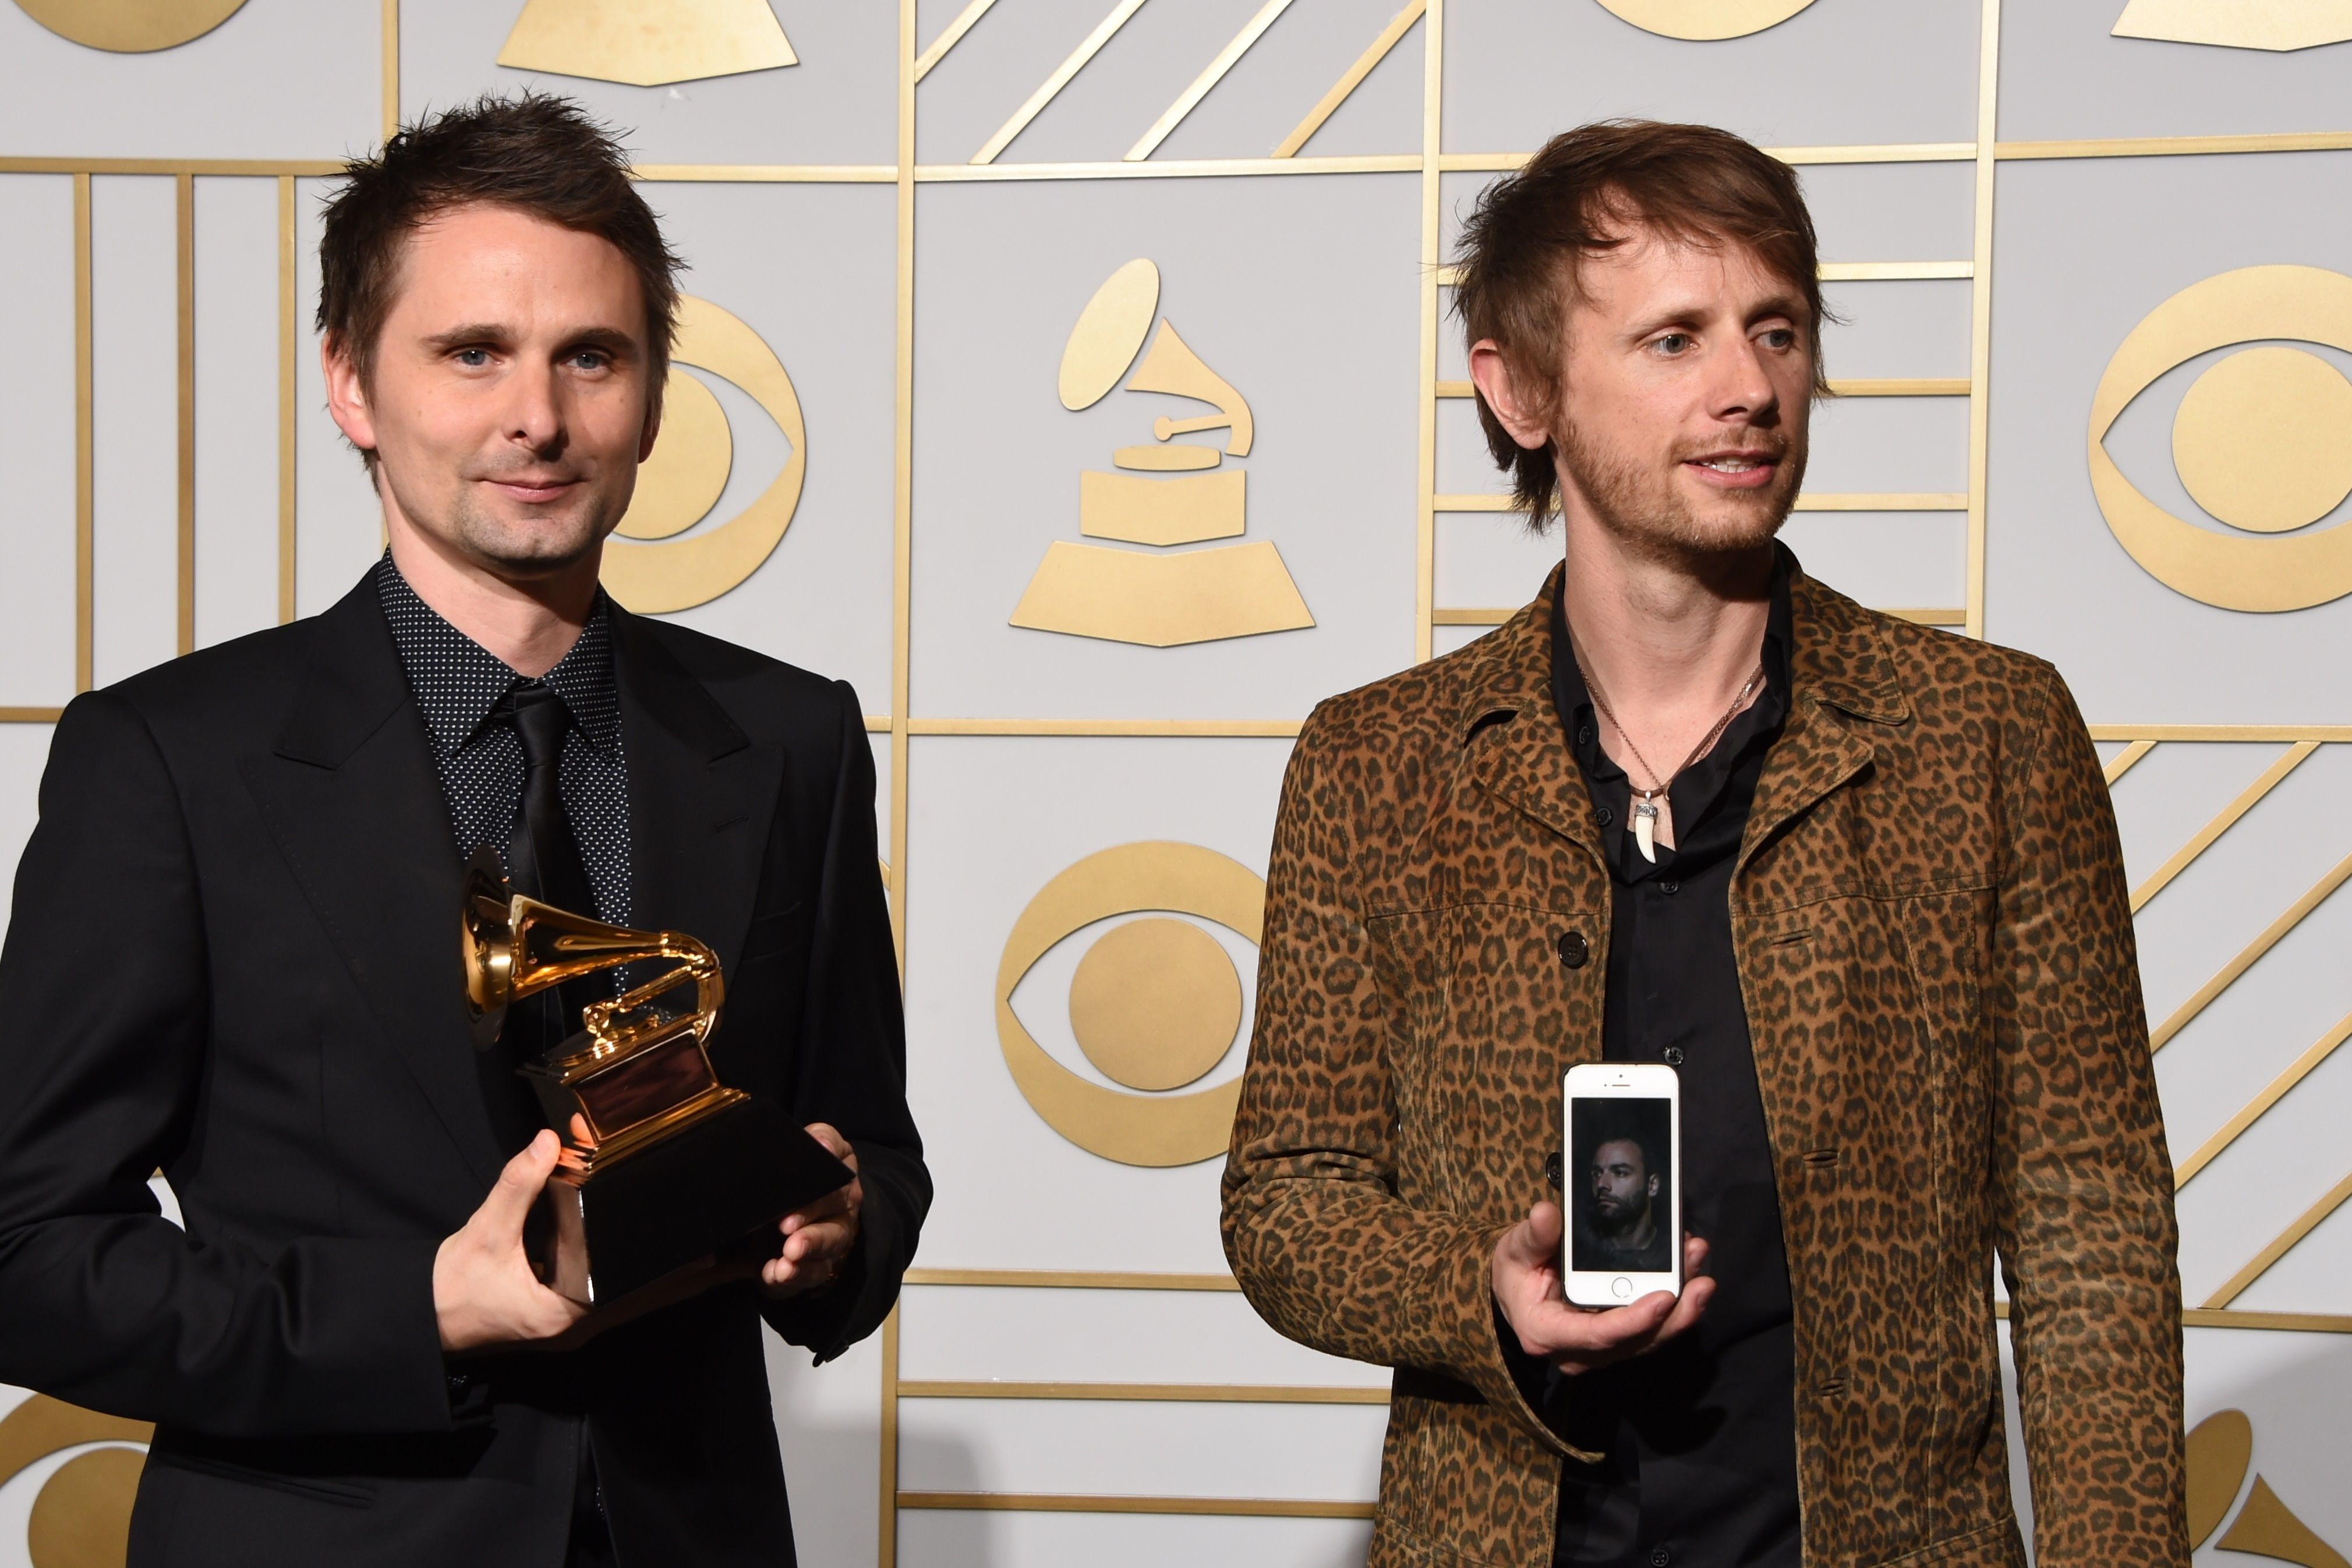 """Muse pose in the press room with their Best Rock Album trophy for """"Drone"""" during the 58th Annual Grammy Music Awards in Los Angeles on February 15, 2016. AFP PHOTO / Mark RALSTON / AFP / MARK RALSTON"""